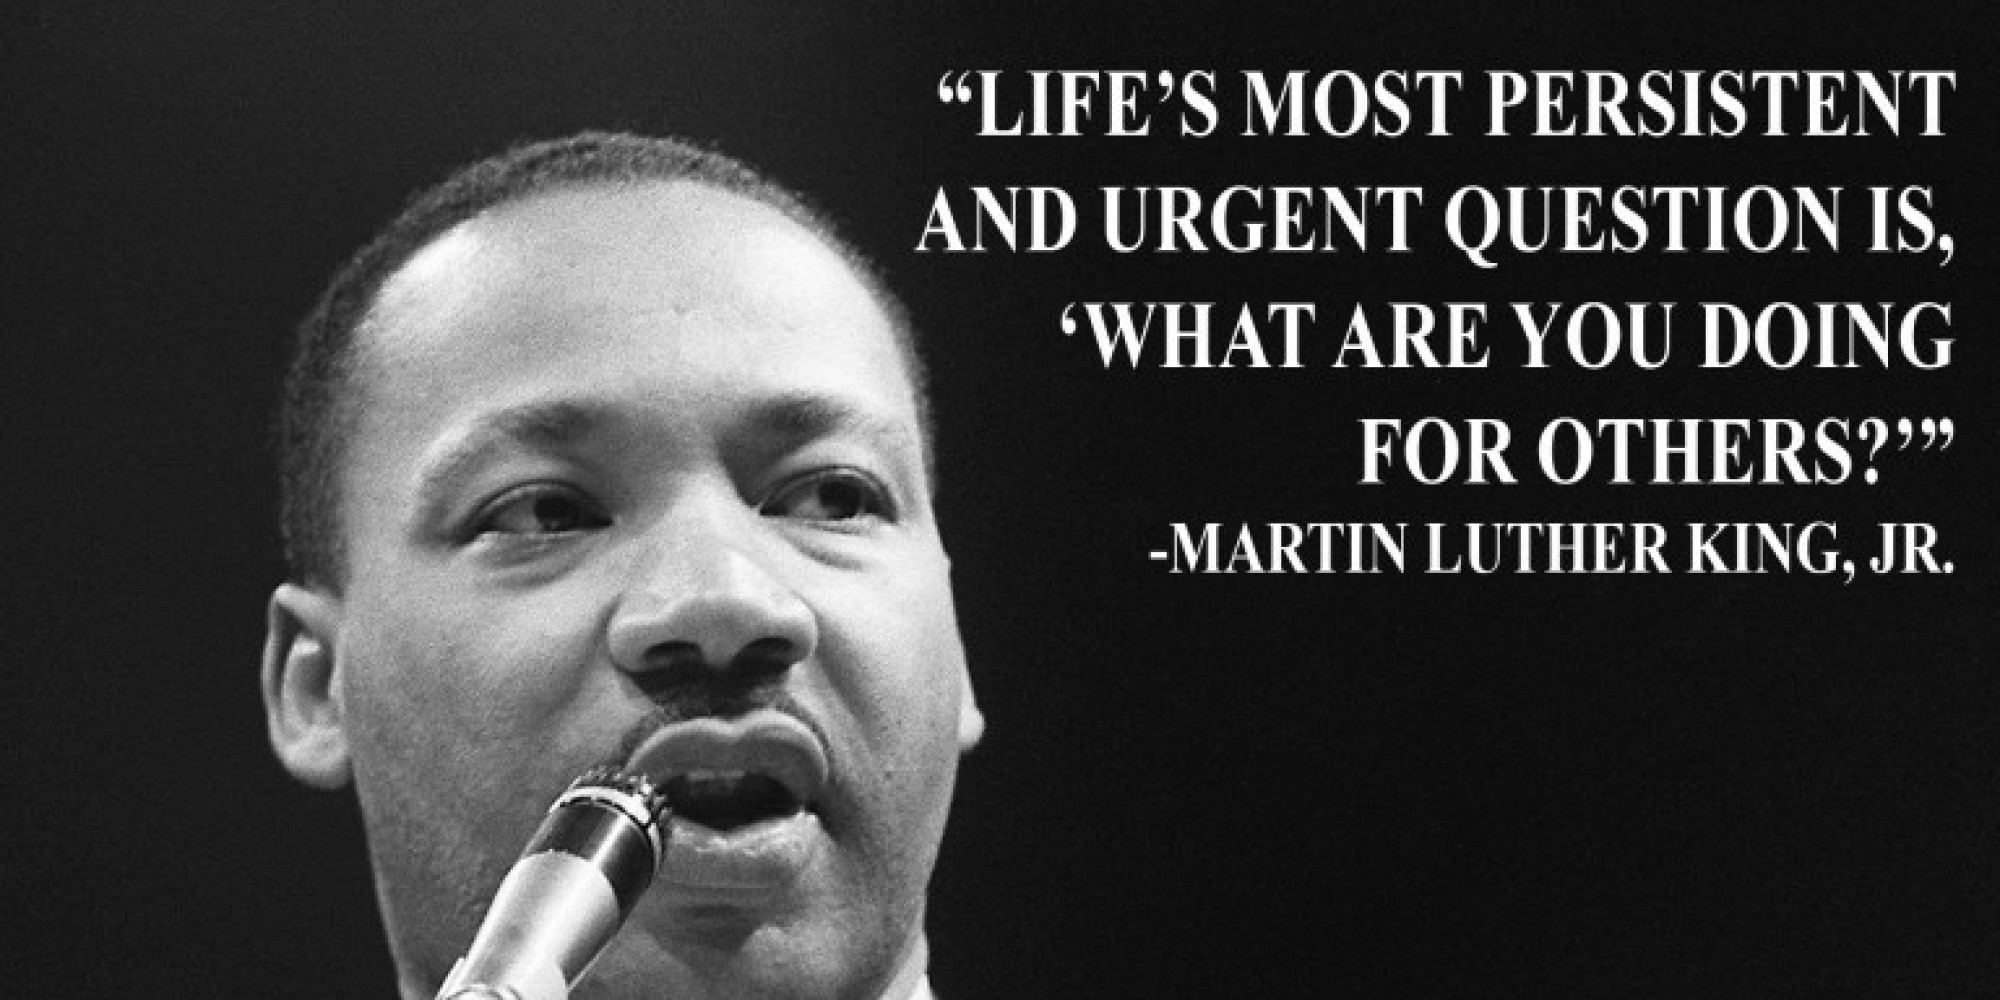 o-MLK-QUOTE-CARD-facebook.jpg